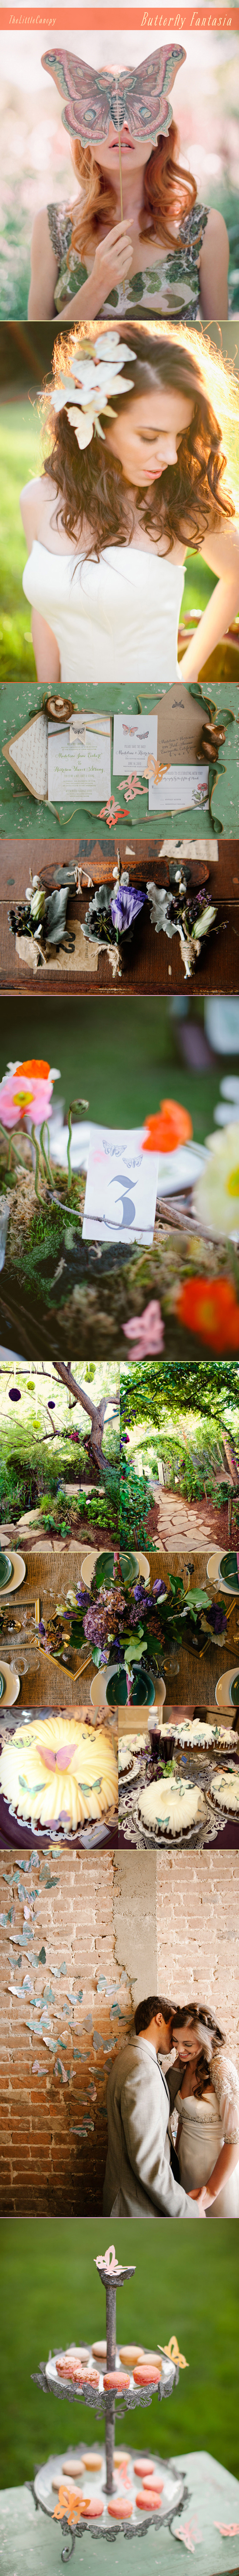 inspiration board of a butterfly fantasia theme for your wedding